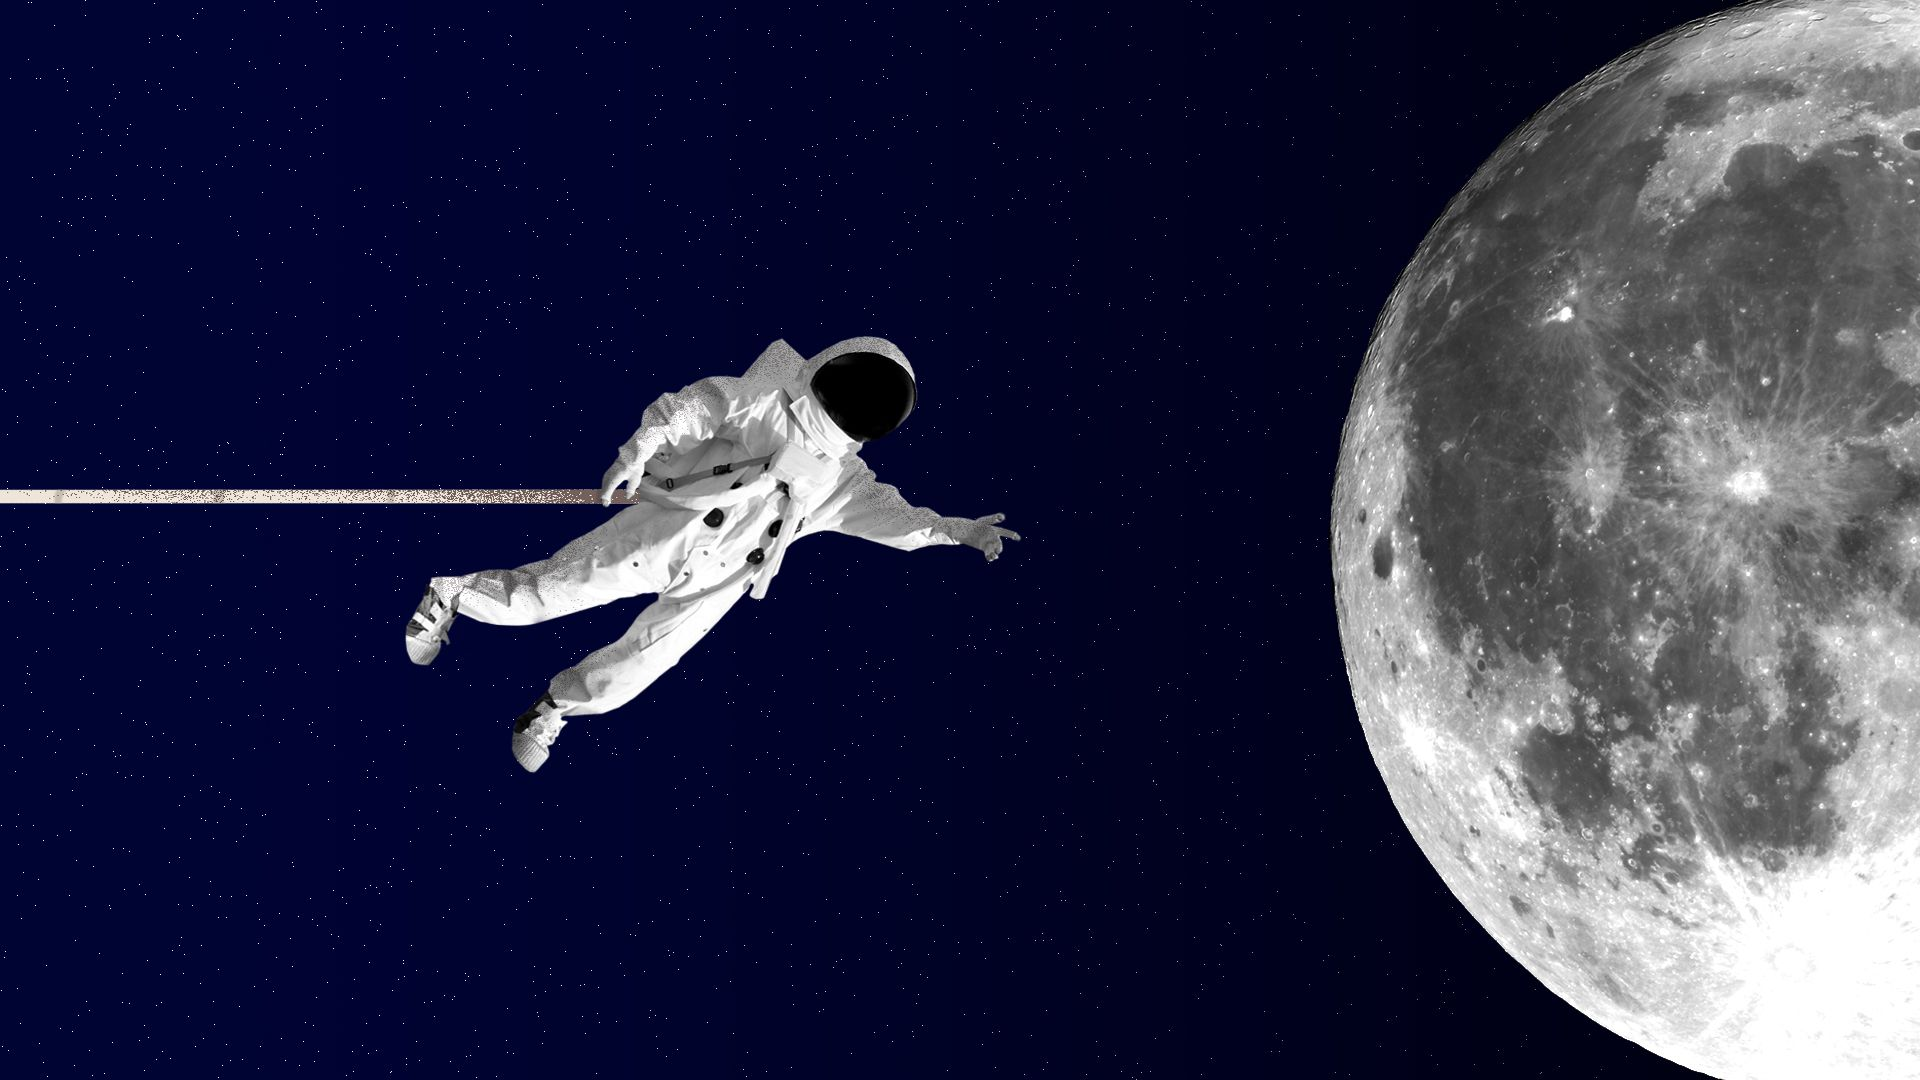 Illustration of an astronaut reaching out for the moon.